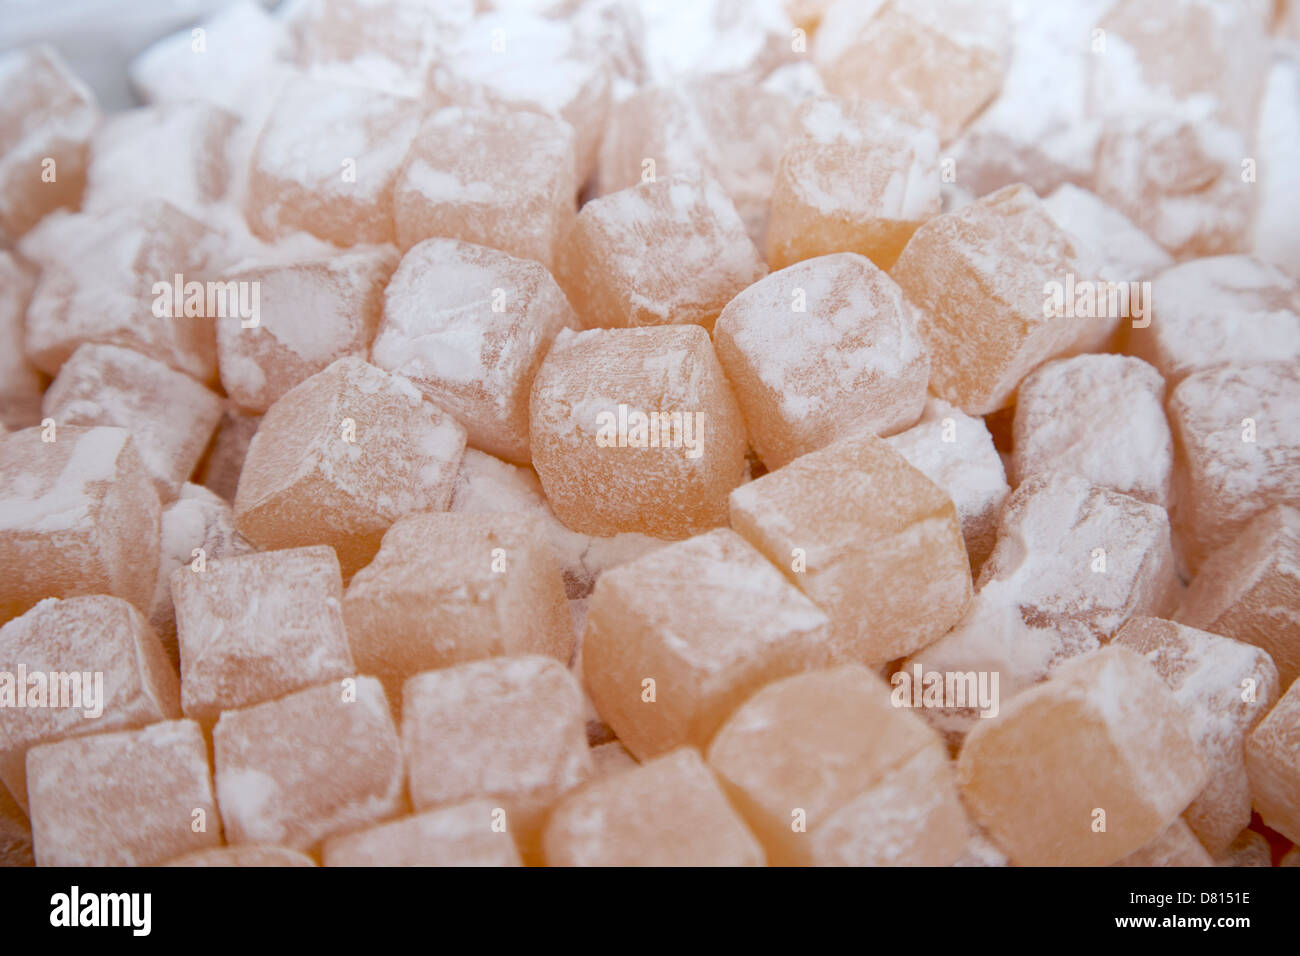 sugar coated turkish delight - Stock Image